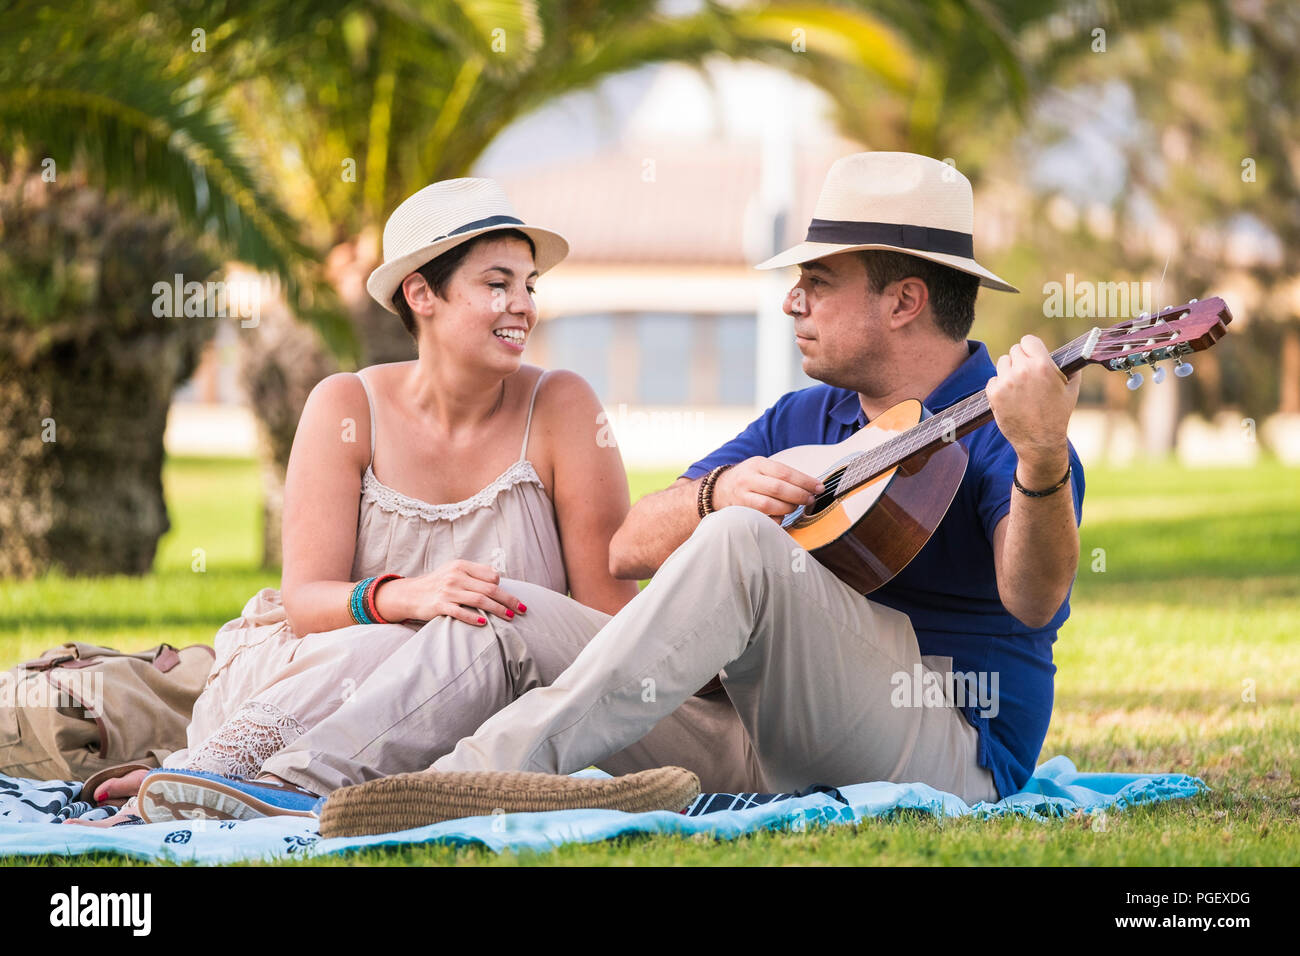 nice happy alternative couple enjoy the outdoor leisure activity together with love and fun playing an acoustic guitar and singing some songs. sitting - Stock Image